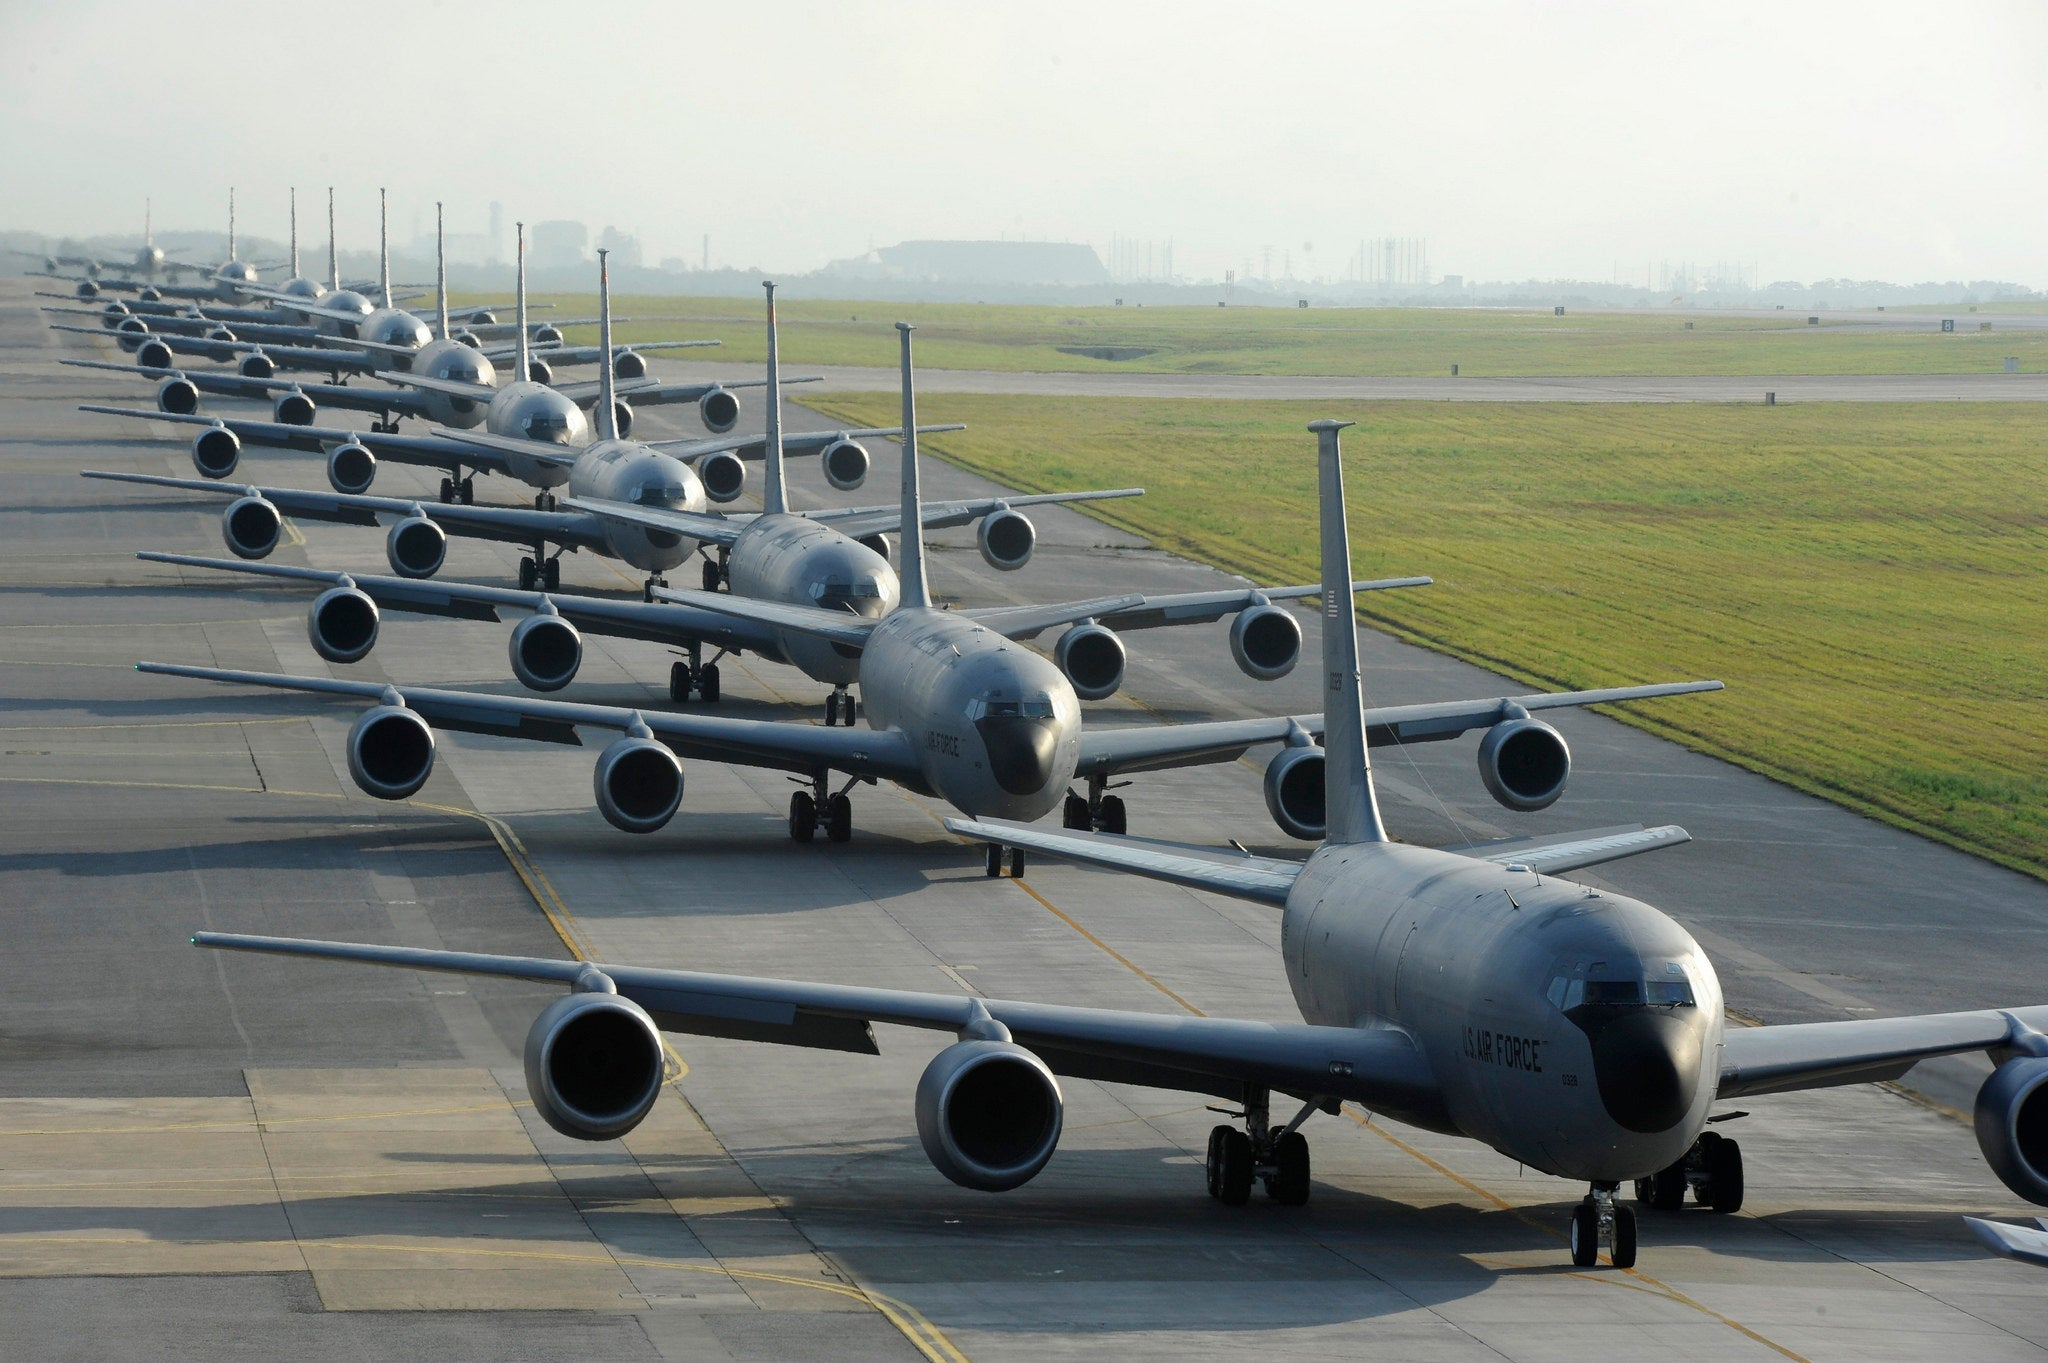 Cool photo of 12 US Air Force Stratotanker refuelling planes in a row